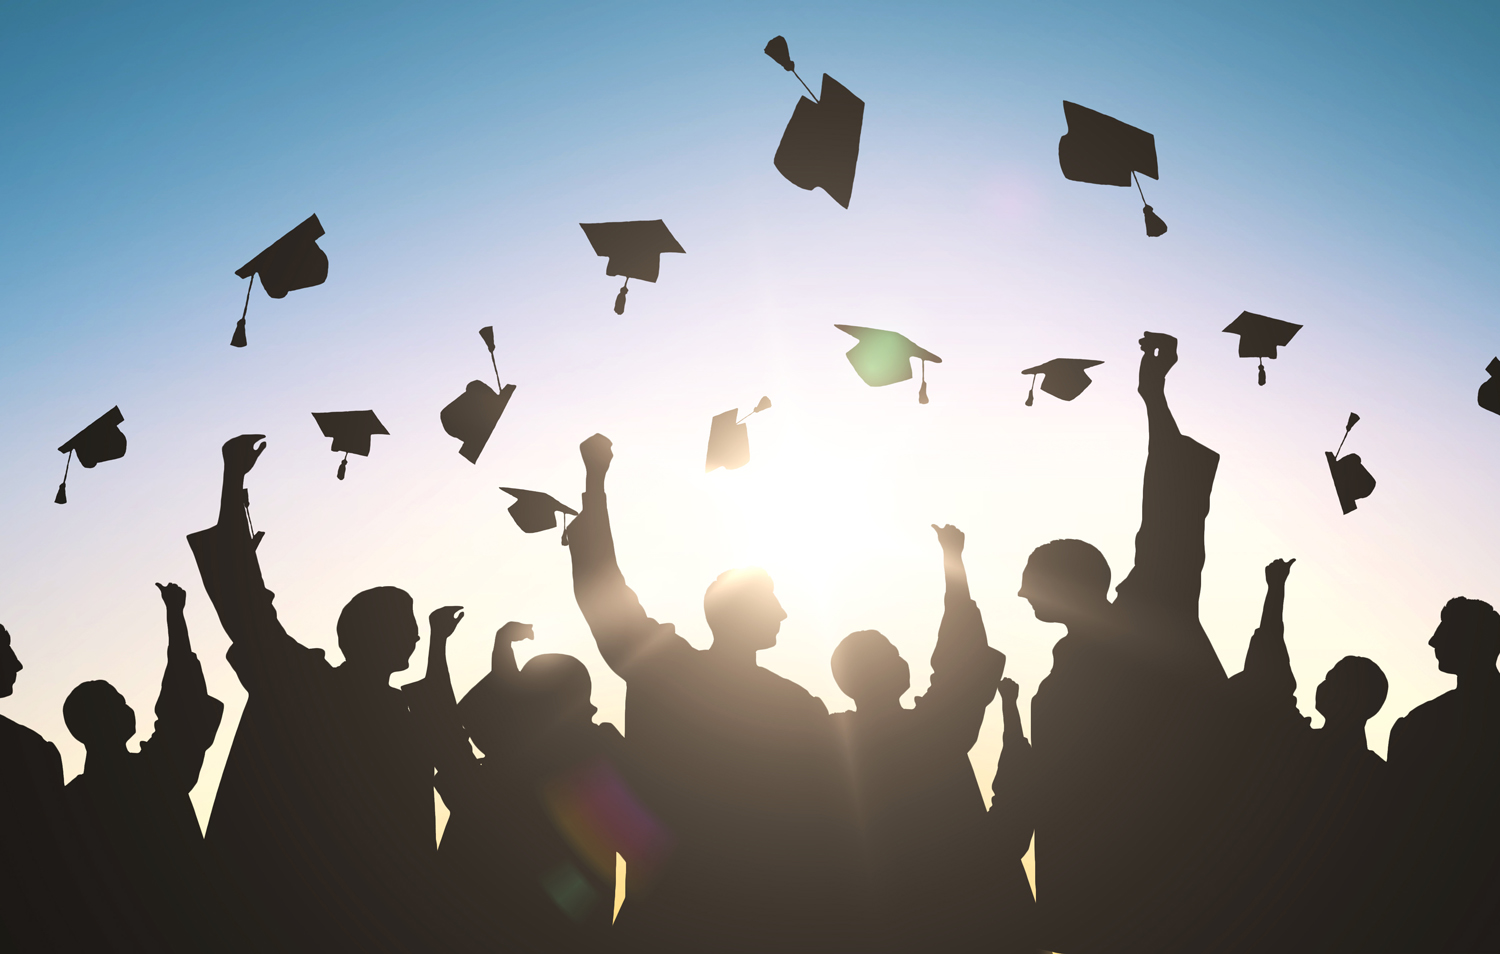 stock-photo-education-graduation-and-people-concept-silhouettes-of-many-happy-students-in-gowns-throwing-454897312.jpg